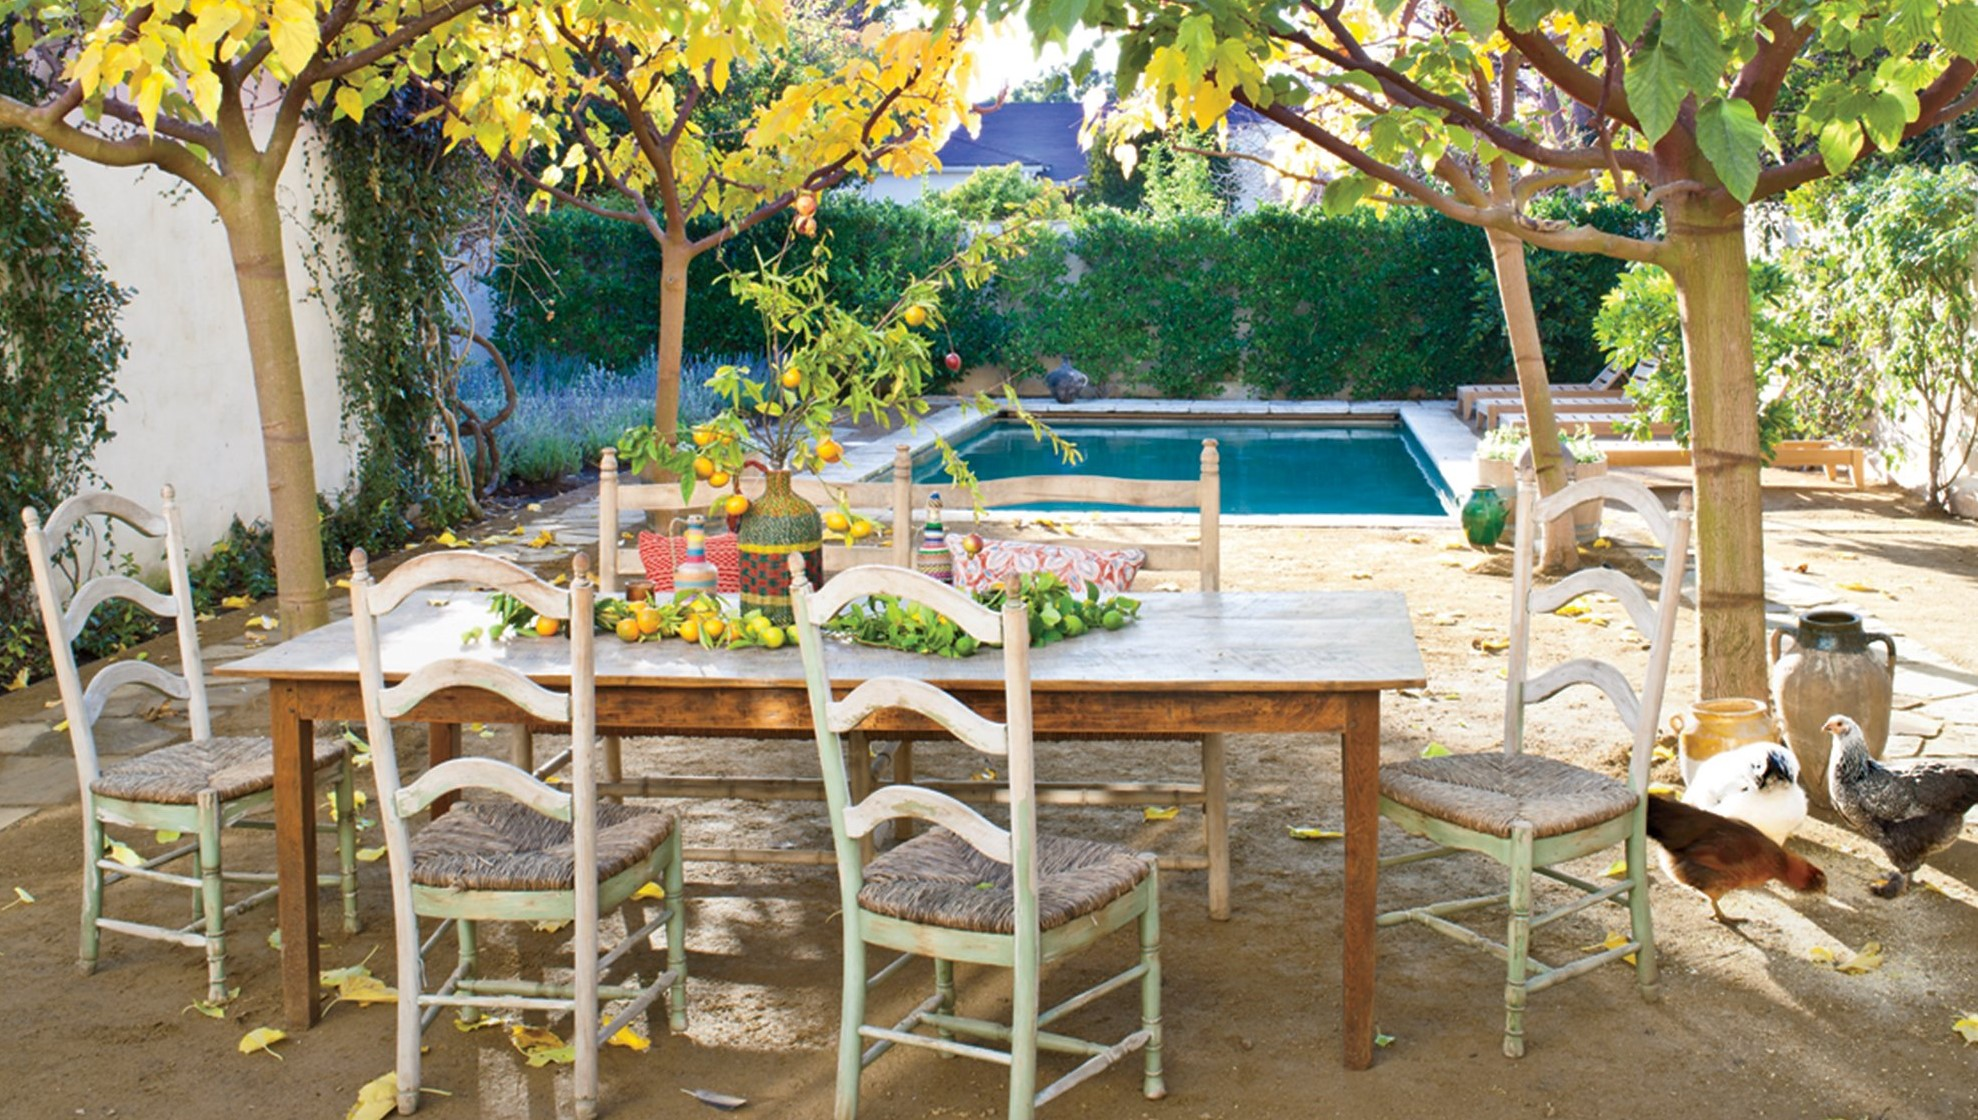 French country style a los angeles shabby chic mania by for Casa coloniale francese